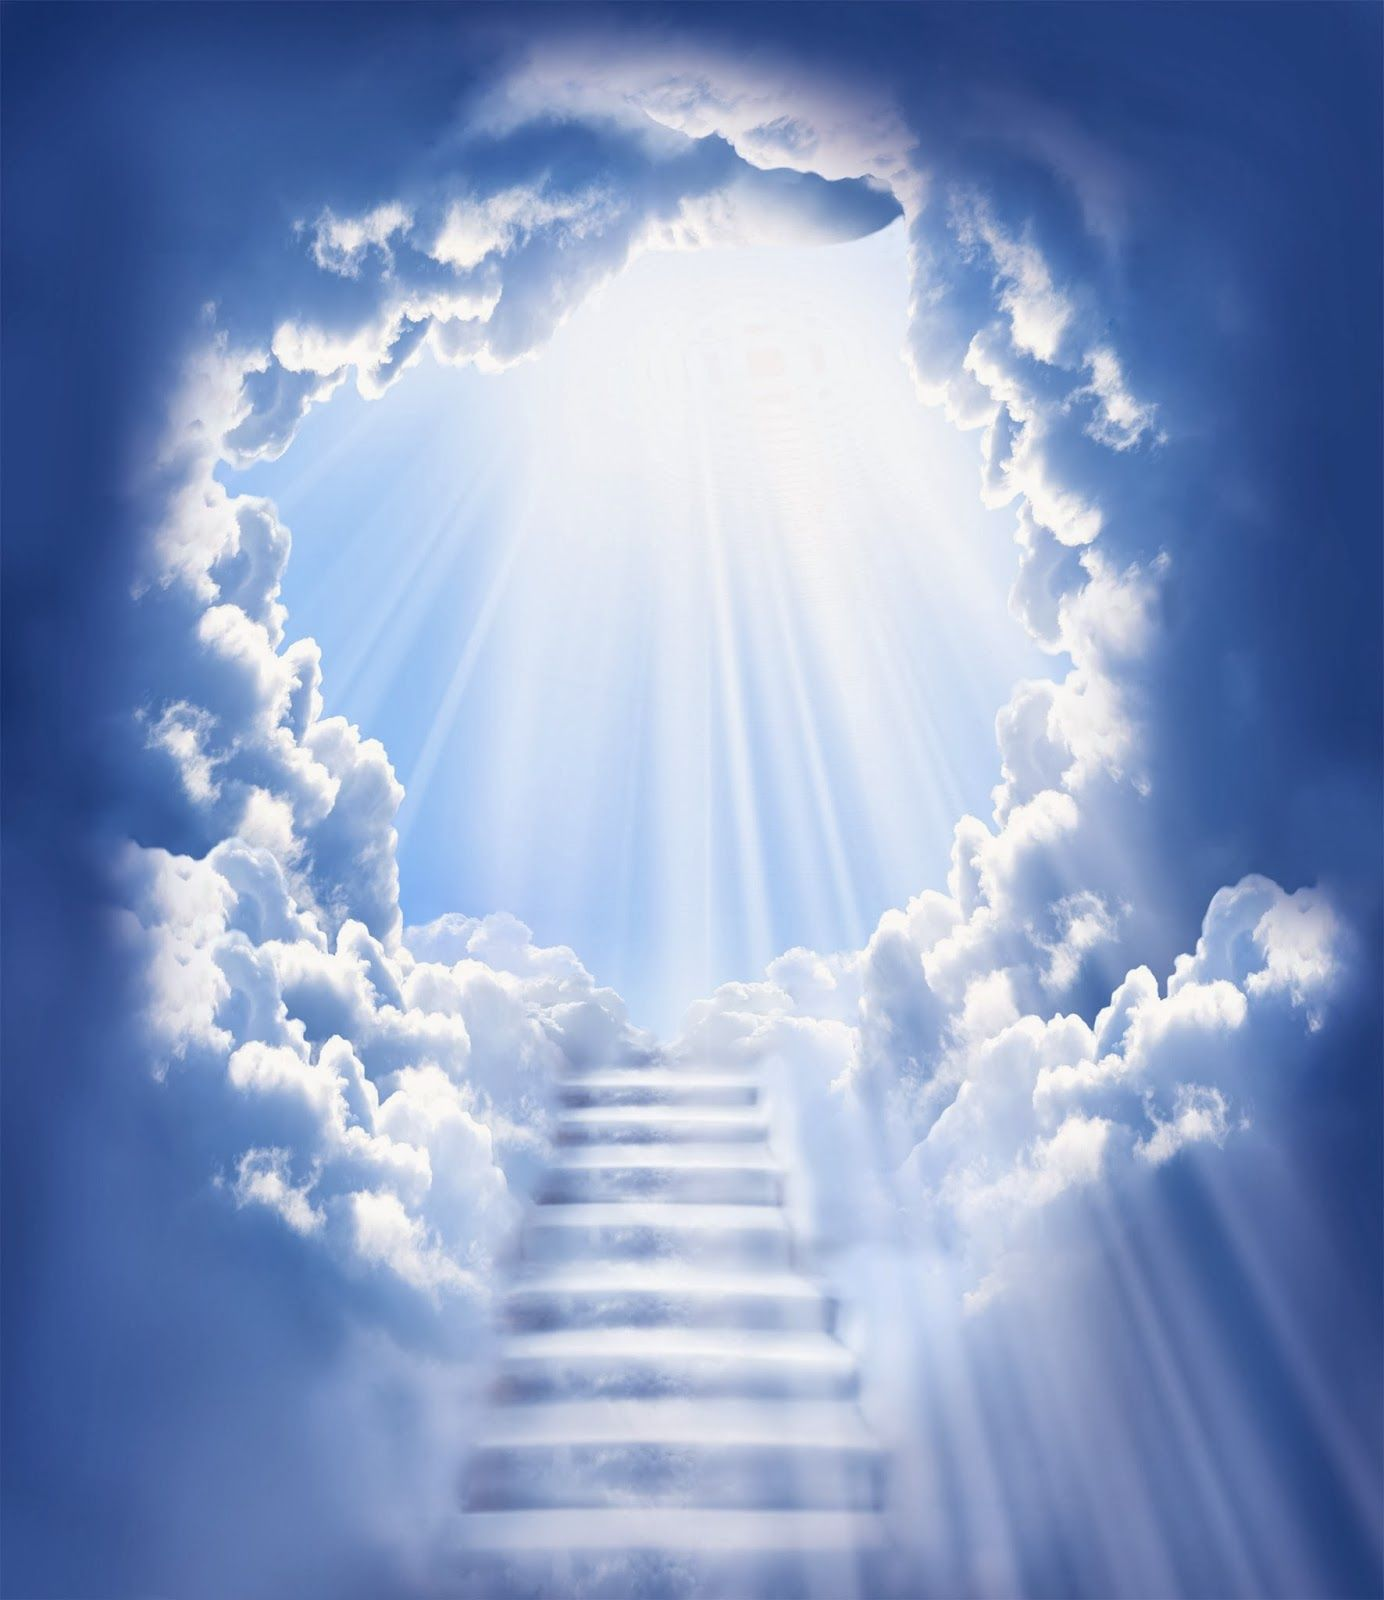 "heavens gate and unification church Breaking down heaven's gate cults are notorious for coercing their members into radical decisions such as mass suicide in march of 1997 newsweek reported, thirty-nine members of the heaven's gate cult committed suicide in attempt to reach the ""next level""."